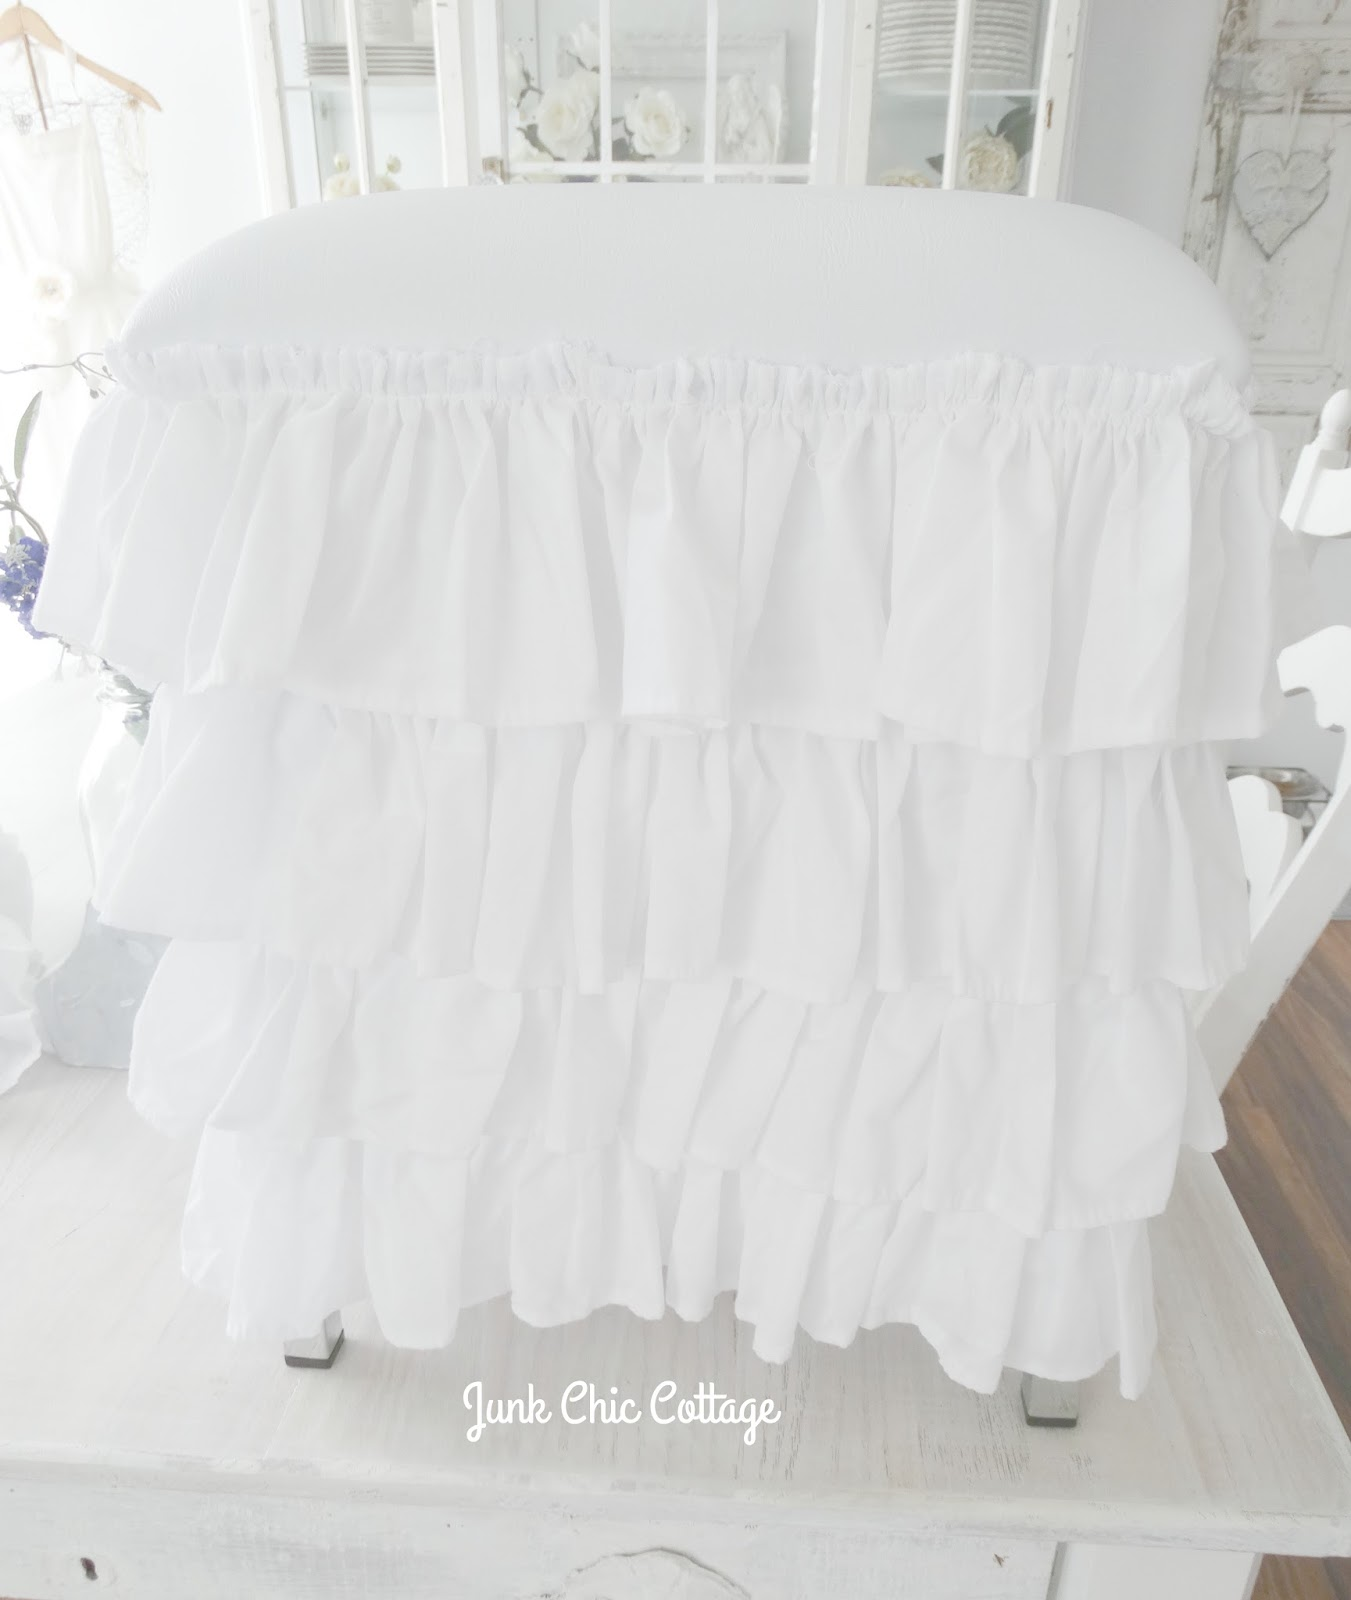 Junk Chic Cottage: Ruffles Repurposed, Shower Curtains Shout Out ...